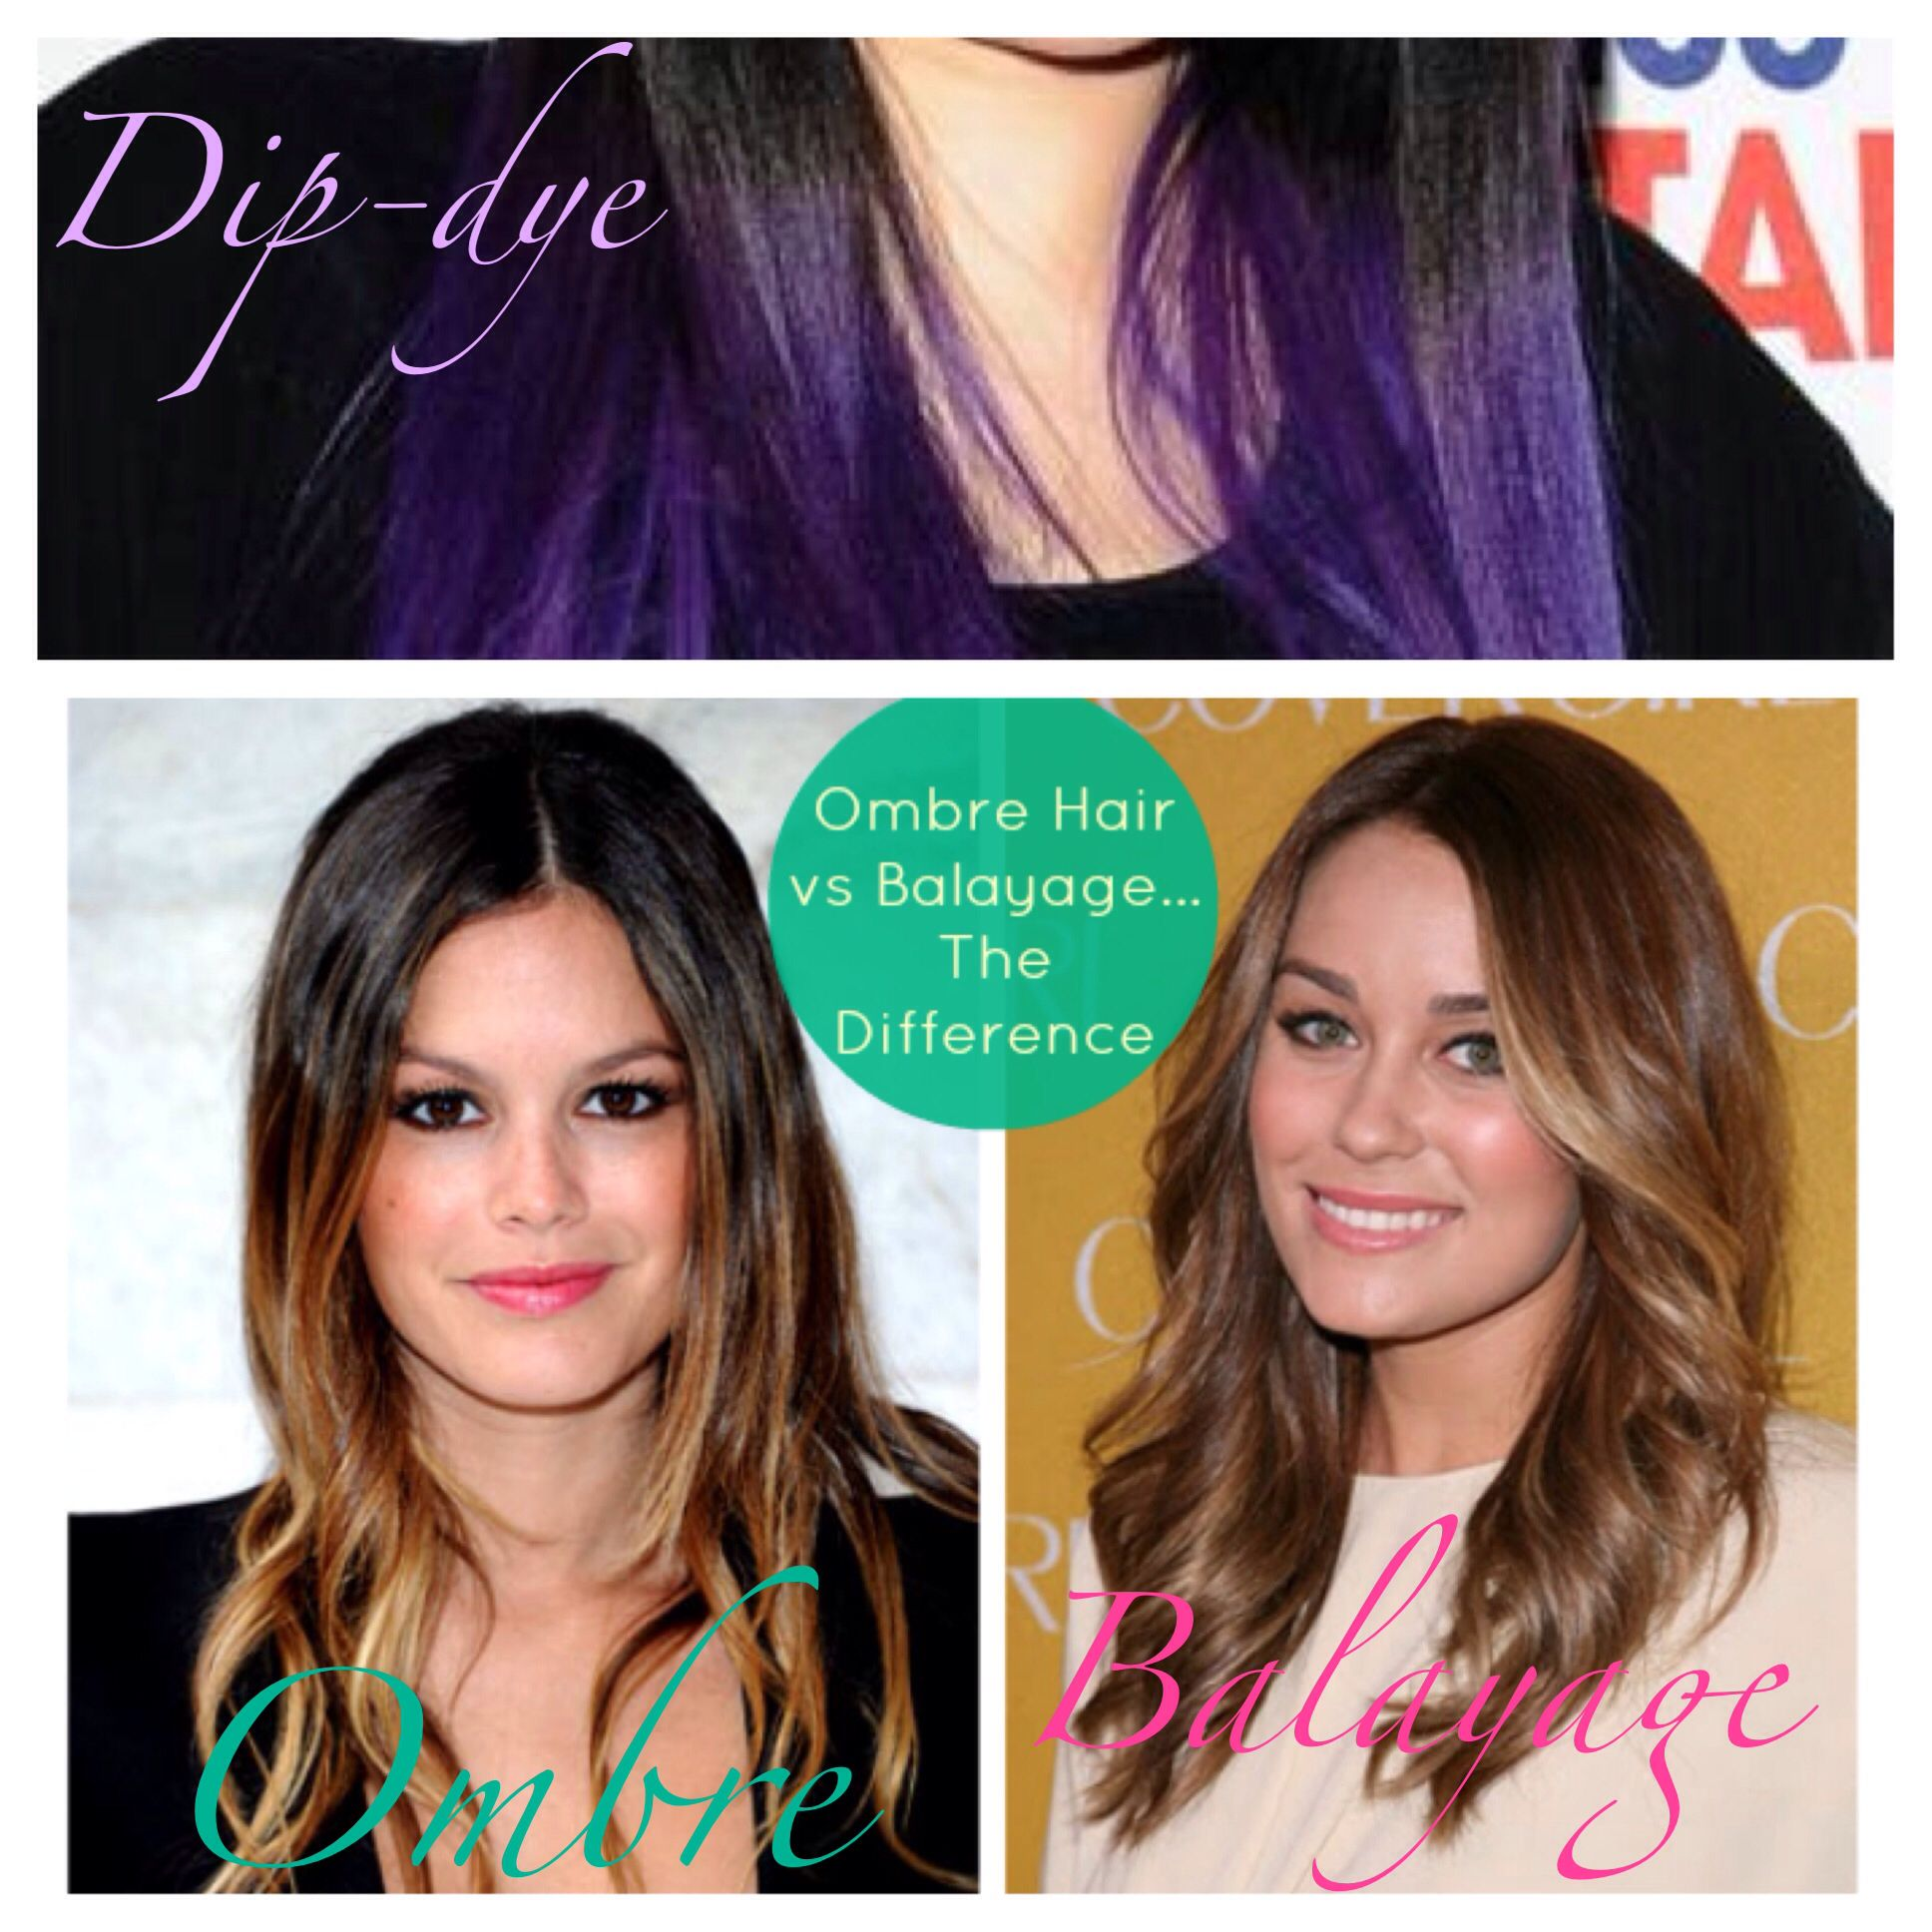 There Is A Difference Between A Dip Dye Ombre And Balayage A Dip Dye Is Typically Just Block Color On The End Hair Job Medium Length Hair Styles Hair Beauty